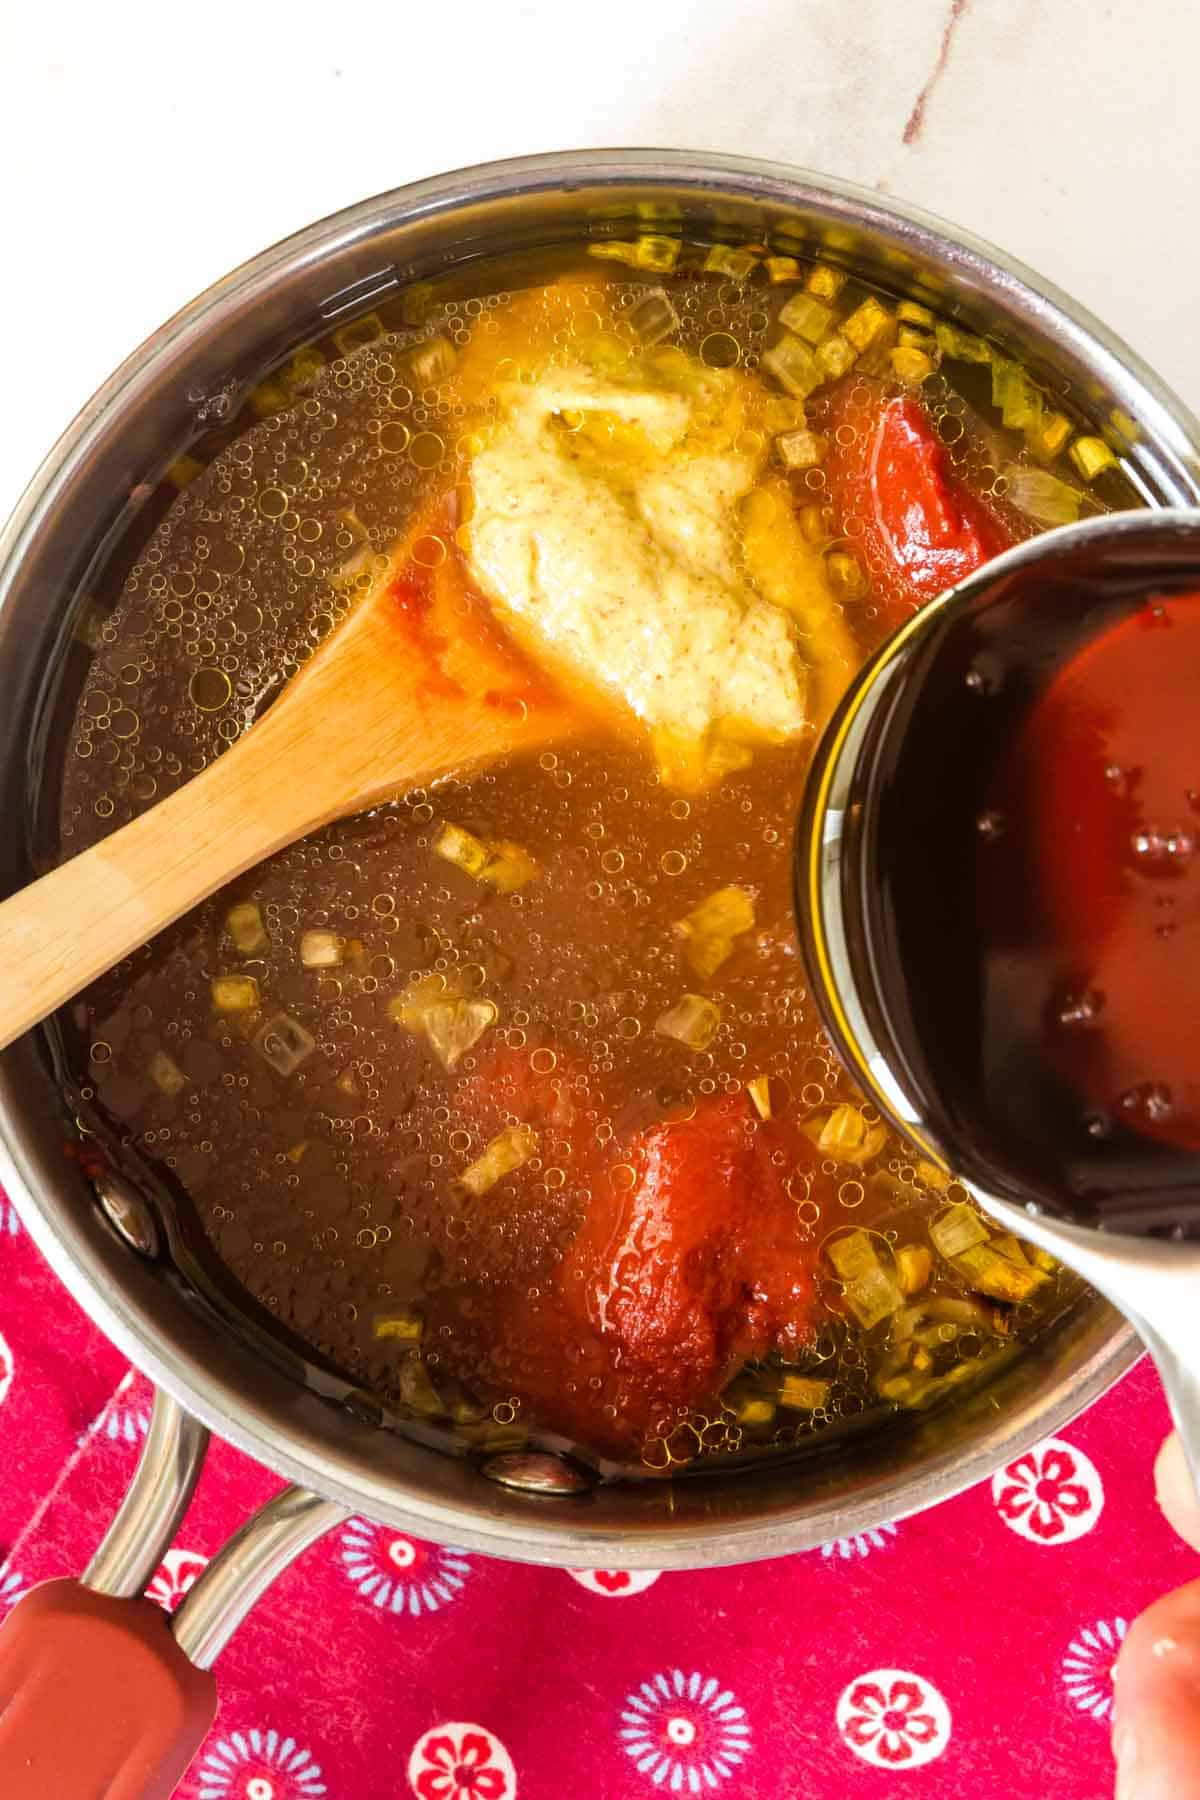 pouring honey into a saucepan with sauteed shallots, apple juice, mustard, and tomato paste